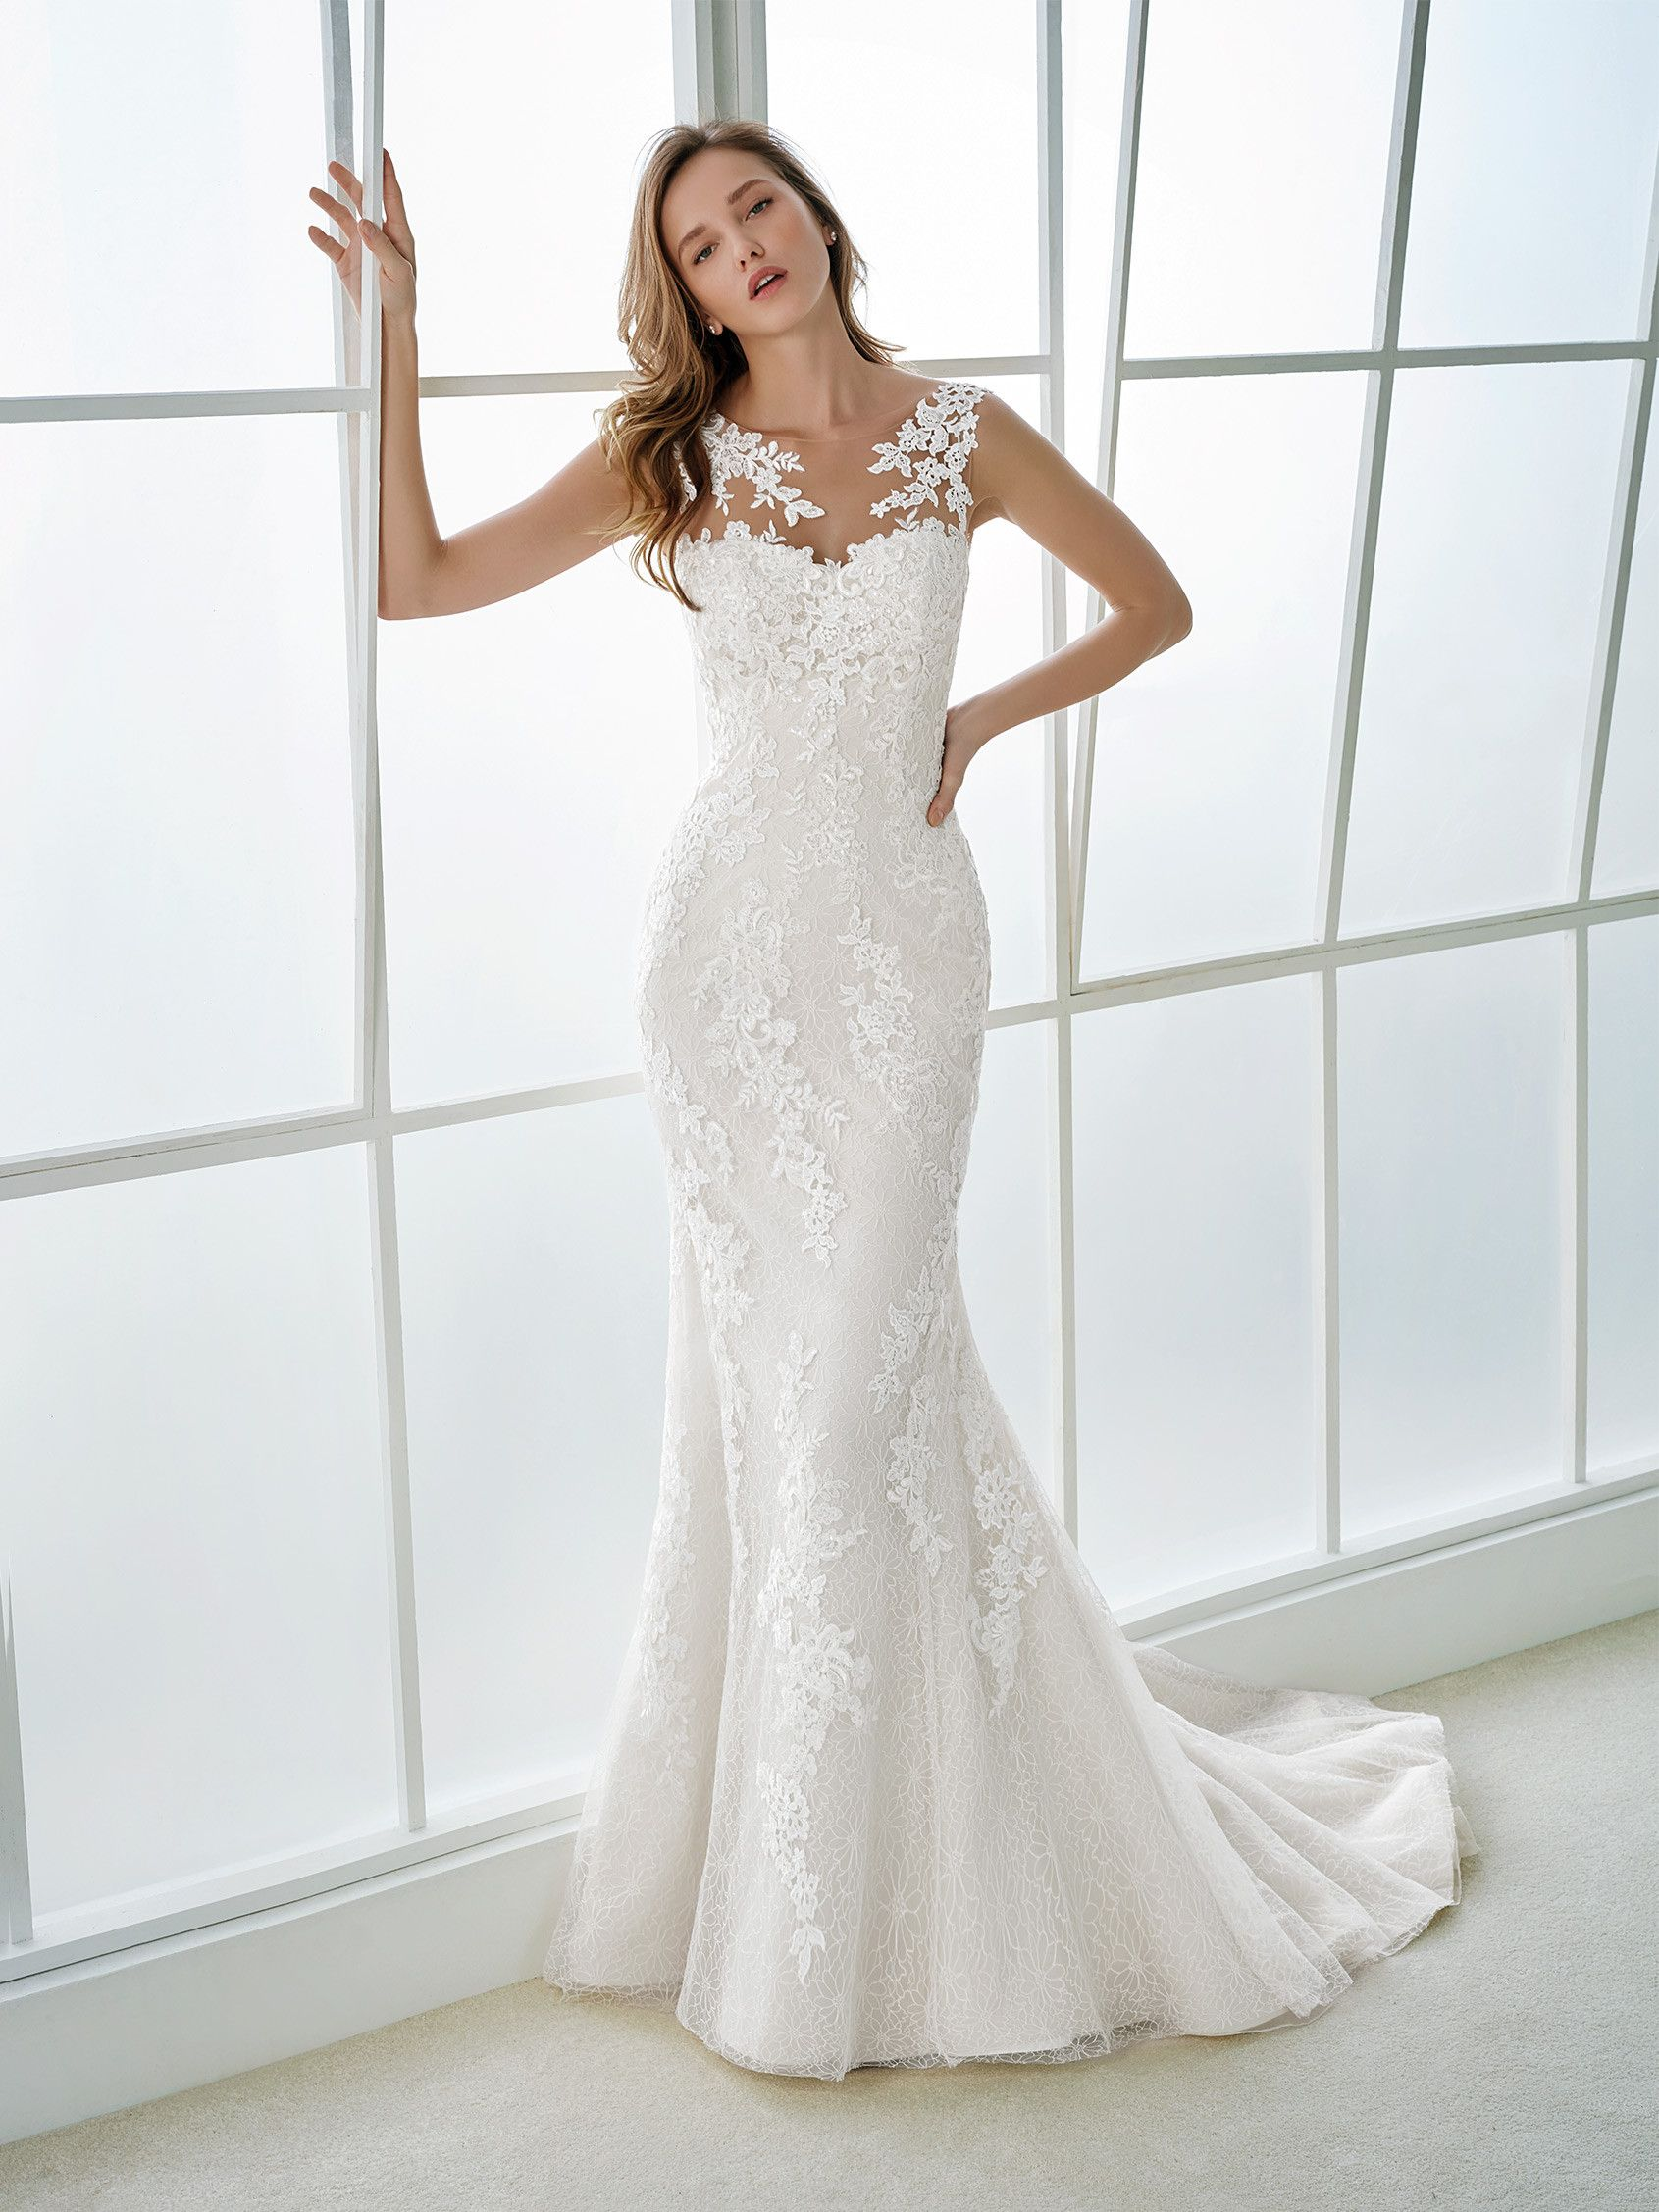 St patrick bridal l white one collection l